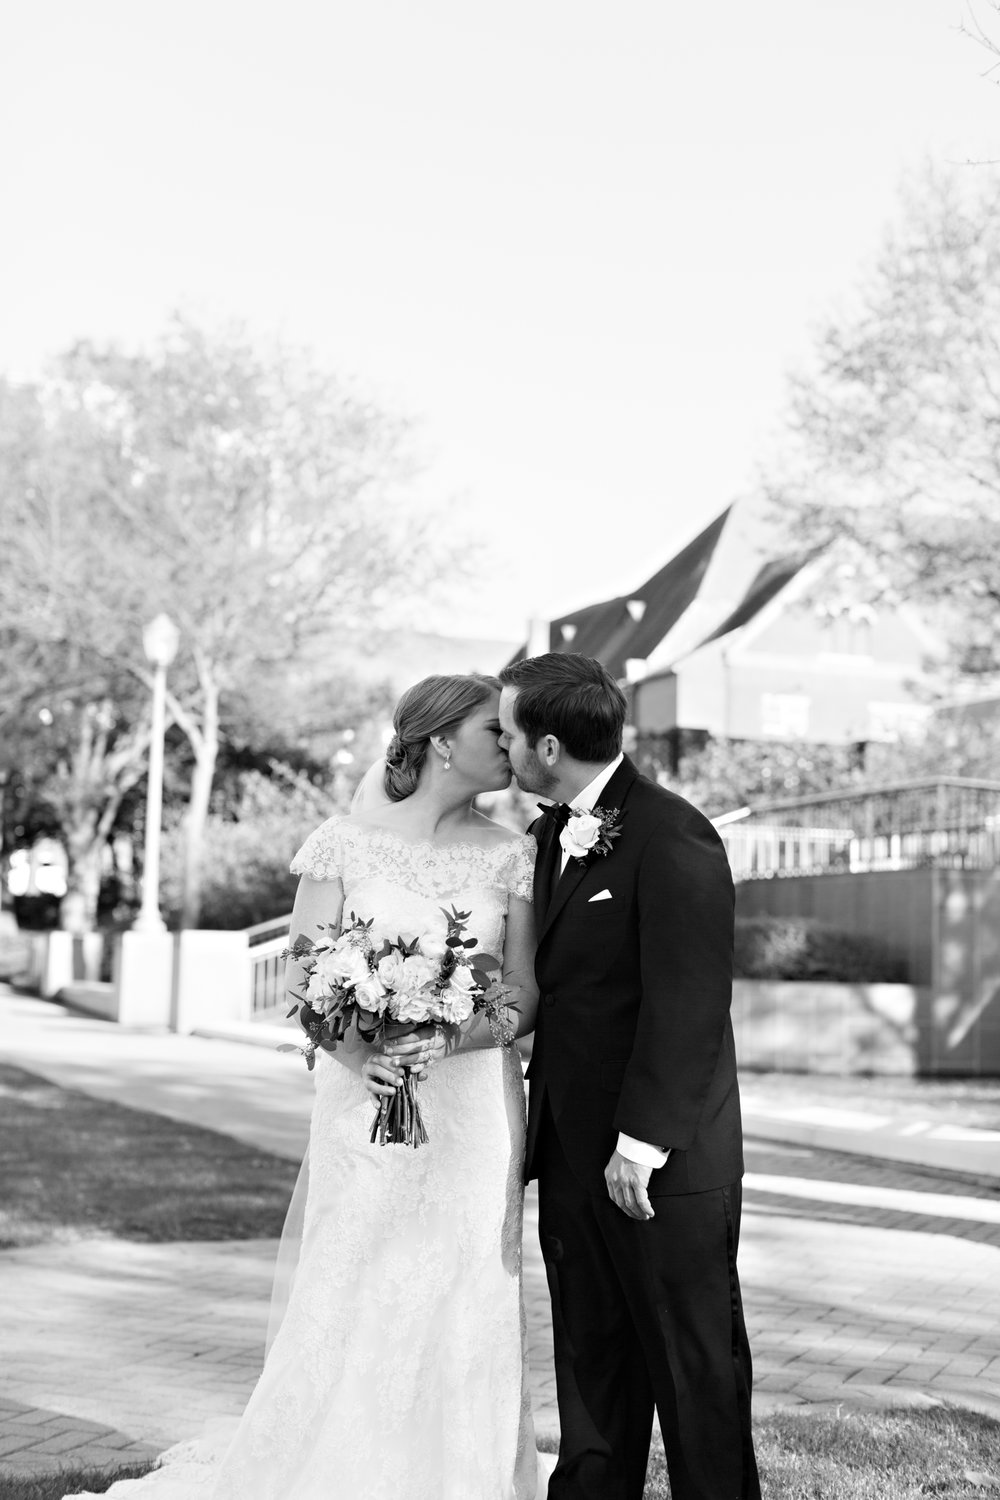 Matty-Drollette-Photography-Weddings-Montgomery-Alabama-115.jpg